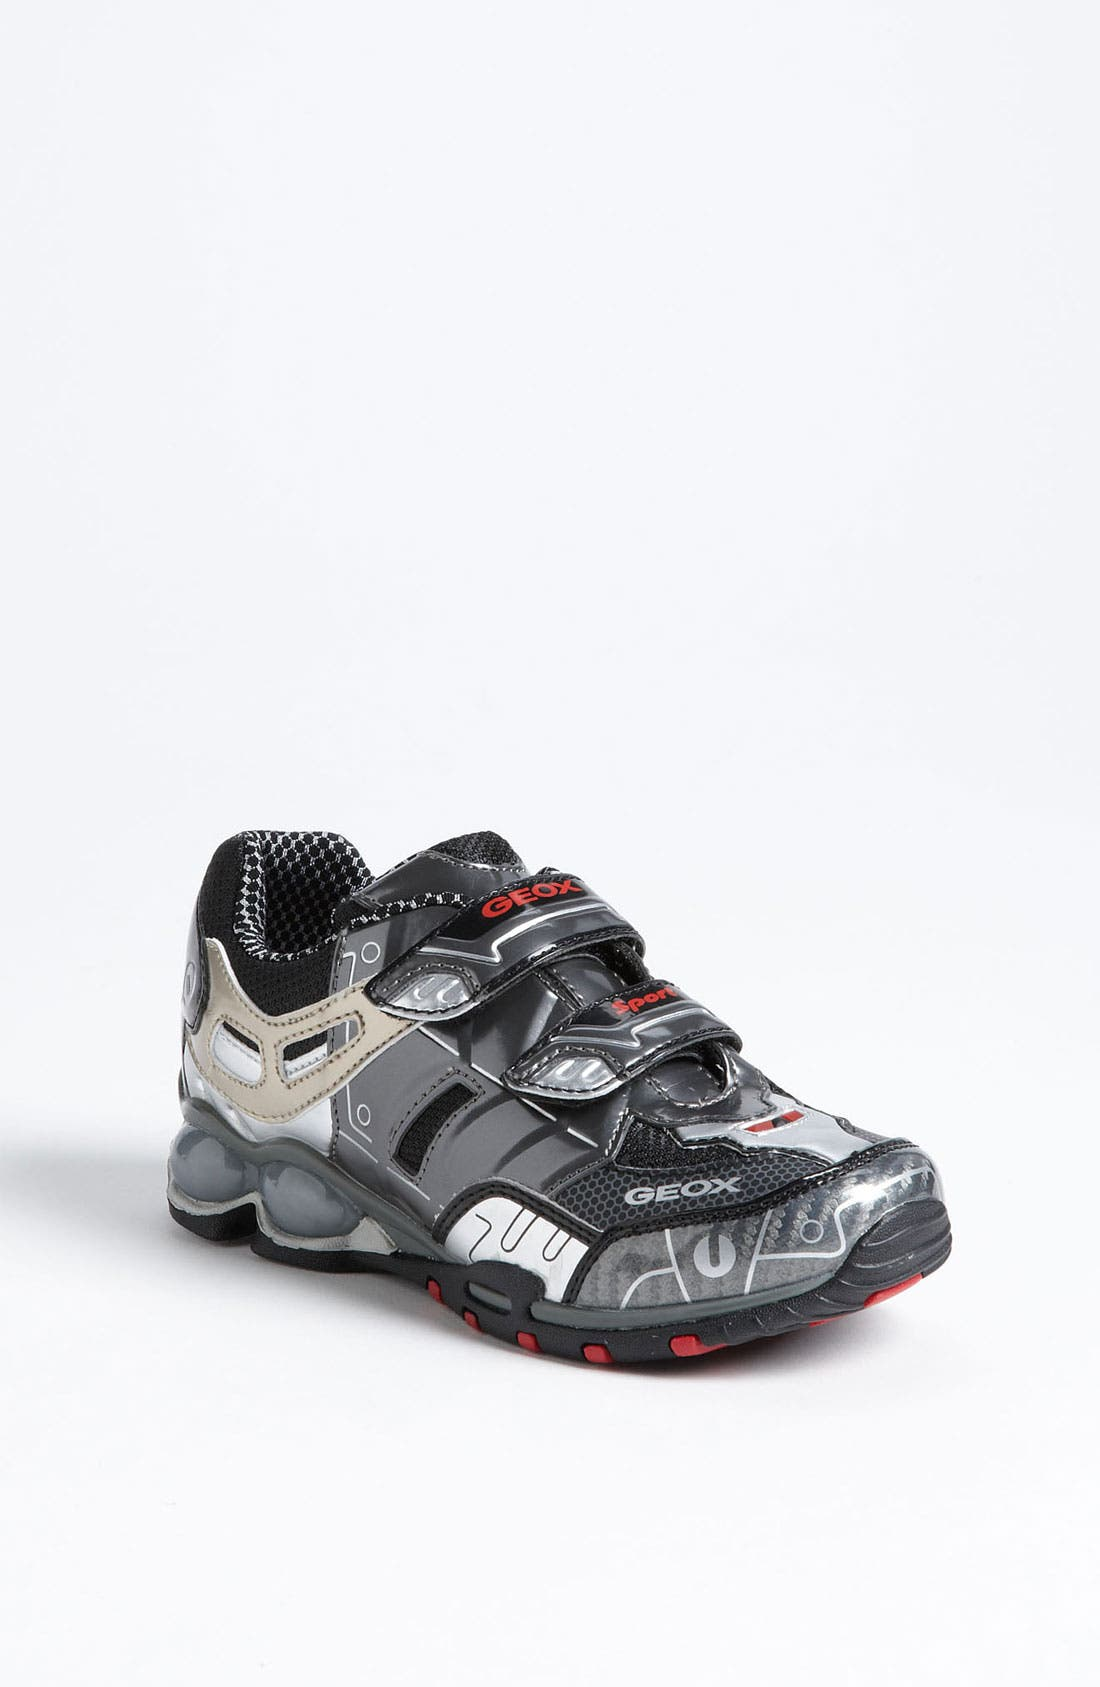 Main Image - Geox 'Fighter' Light-Up Sneaker (Toddler, Little Kid & Big Kid)